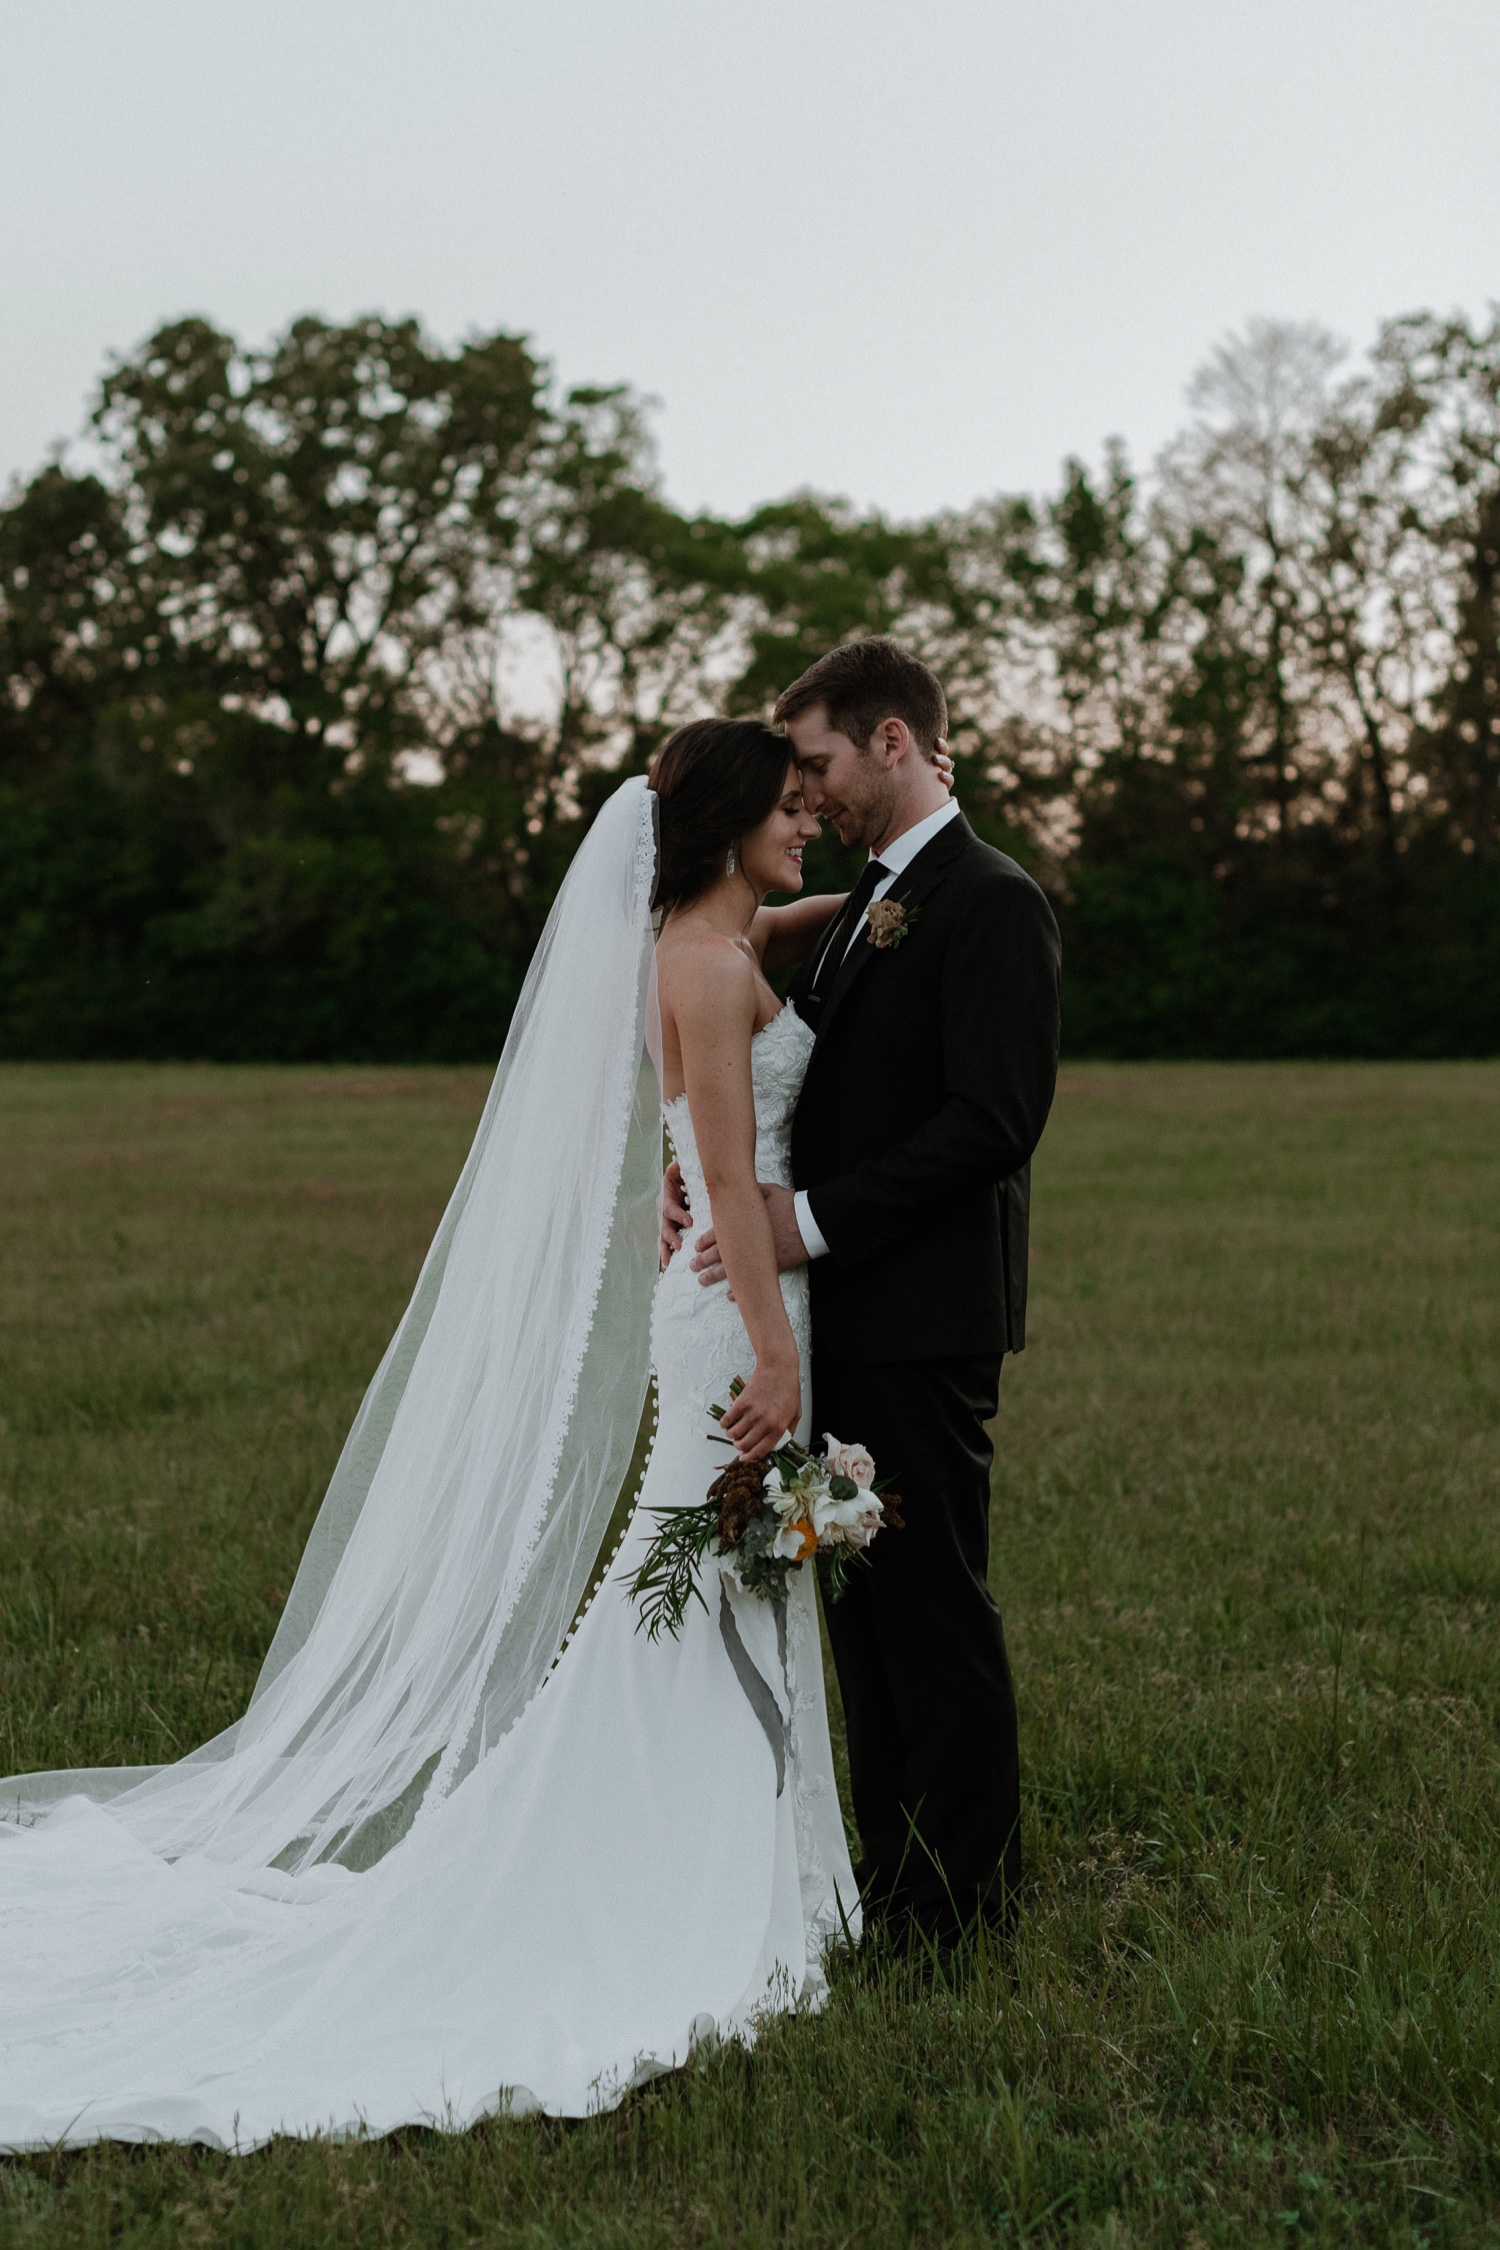 64_JacobandAliWeddingMattLaneFarmFreckledFoxPhotography-900.jpg